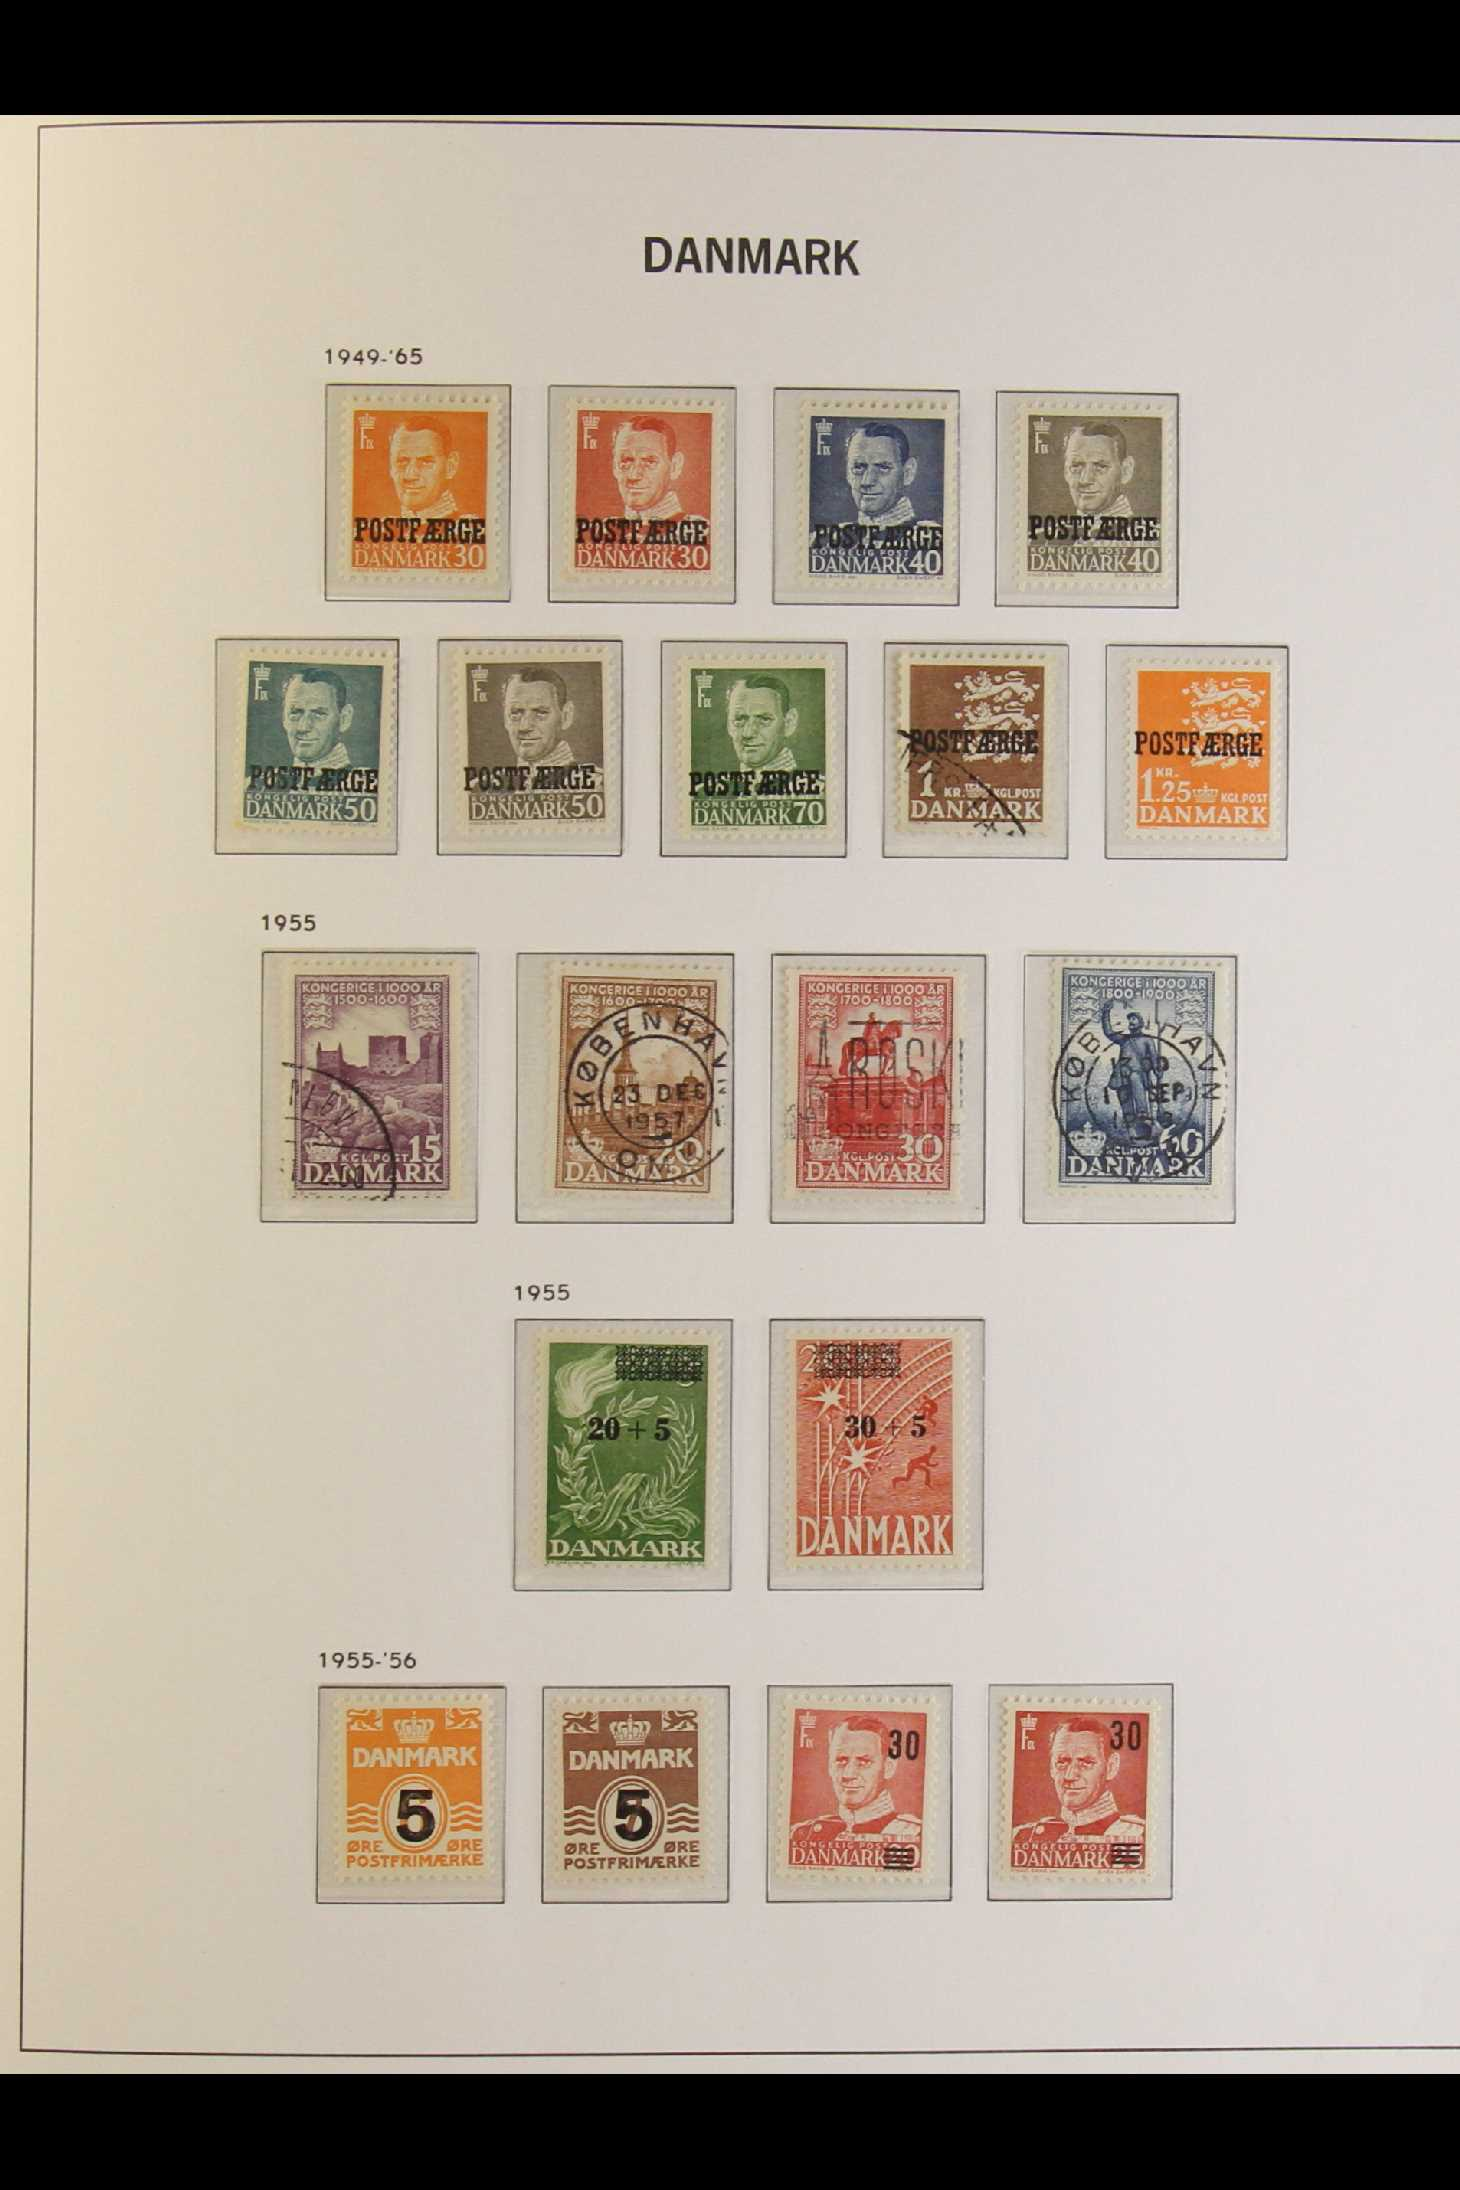 DENMARK 1882-1969 mint and used collection in an album incl. 1882 (small corner figures) 5 ore and - Image 10 of 15